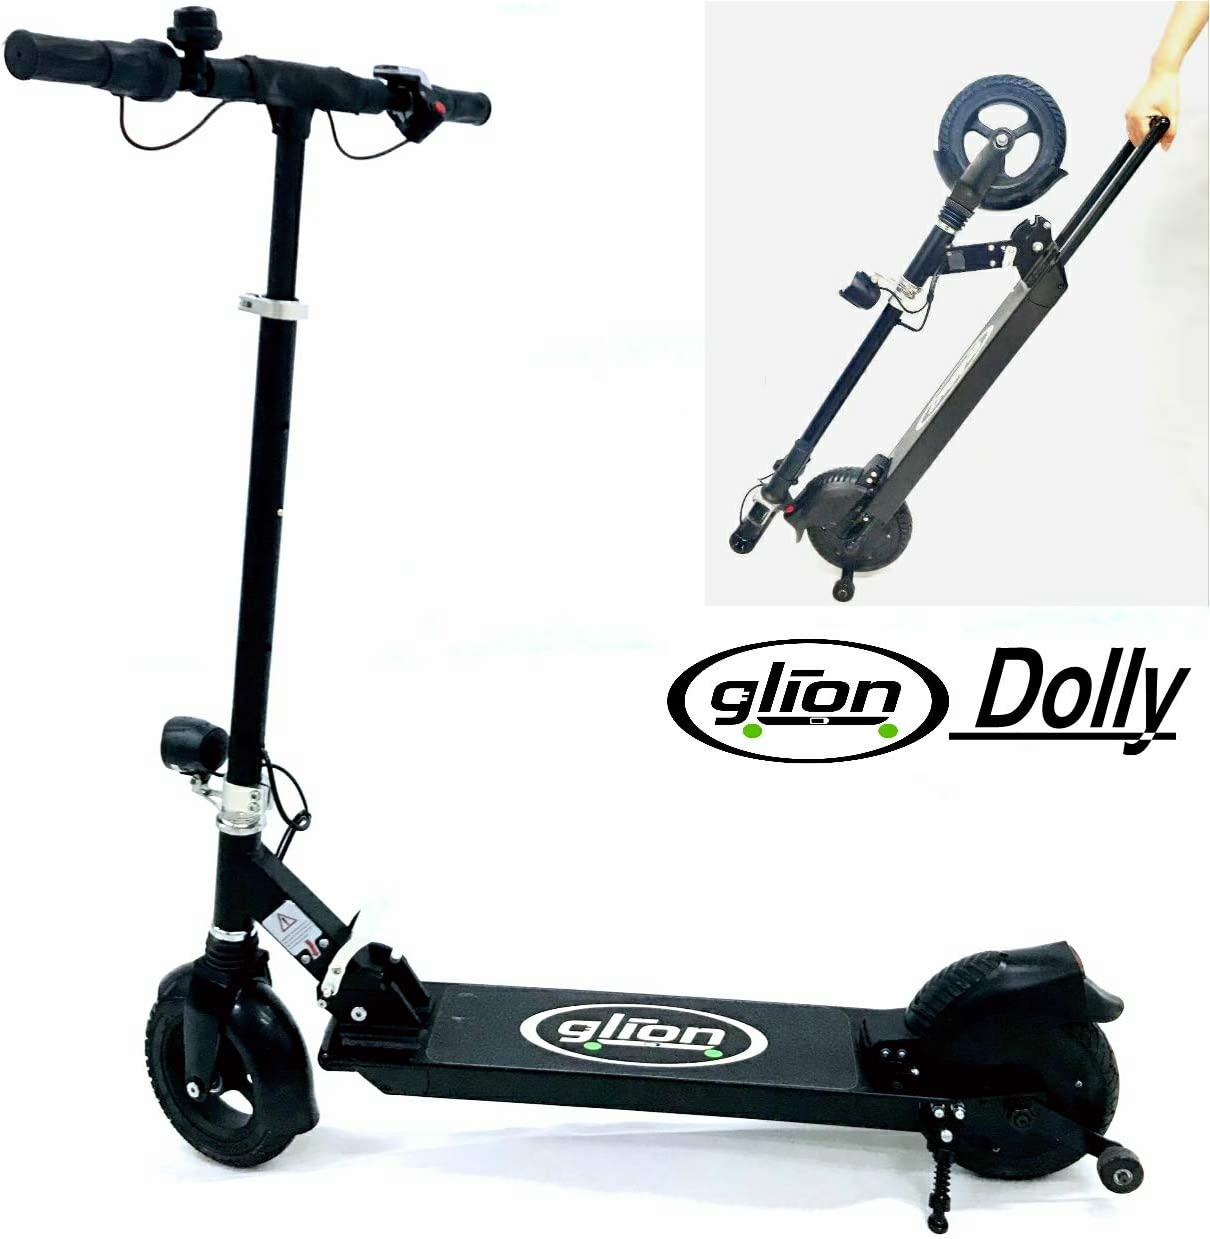 Top 8 Best Electric Scooters (2020 Reviews & Buying Guide) 8